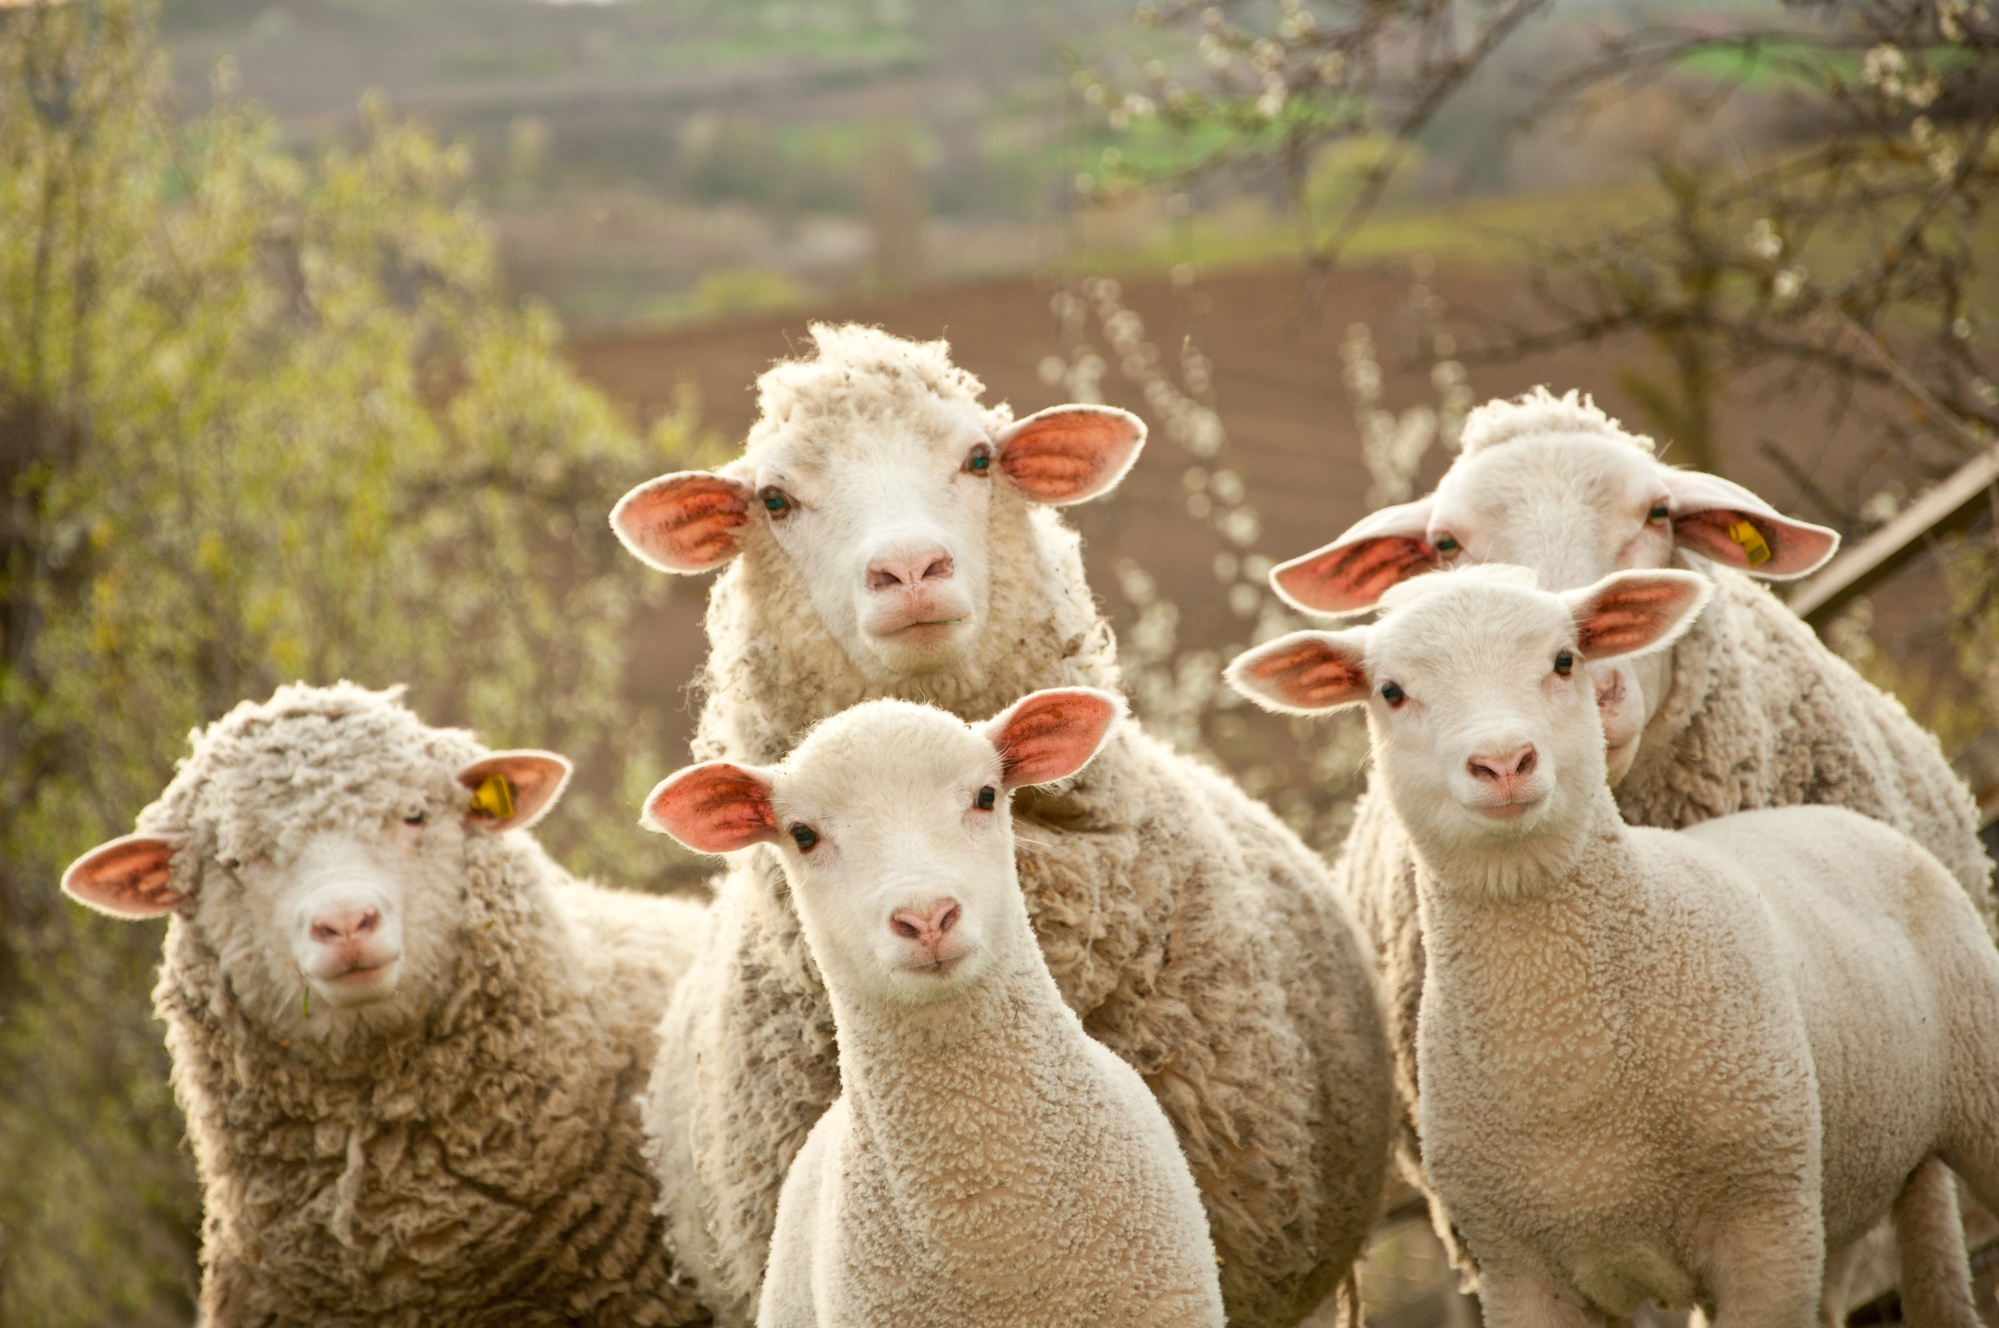 PACK & SEND delivers to Australian Wool Innovation's global offices worldwide